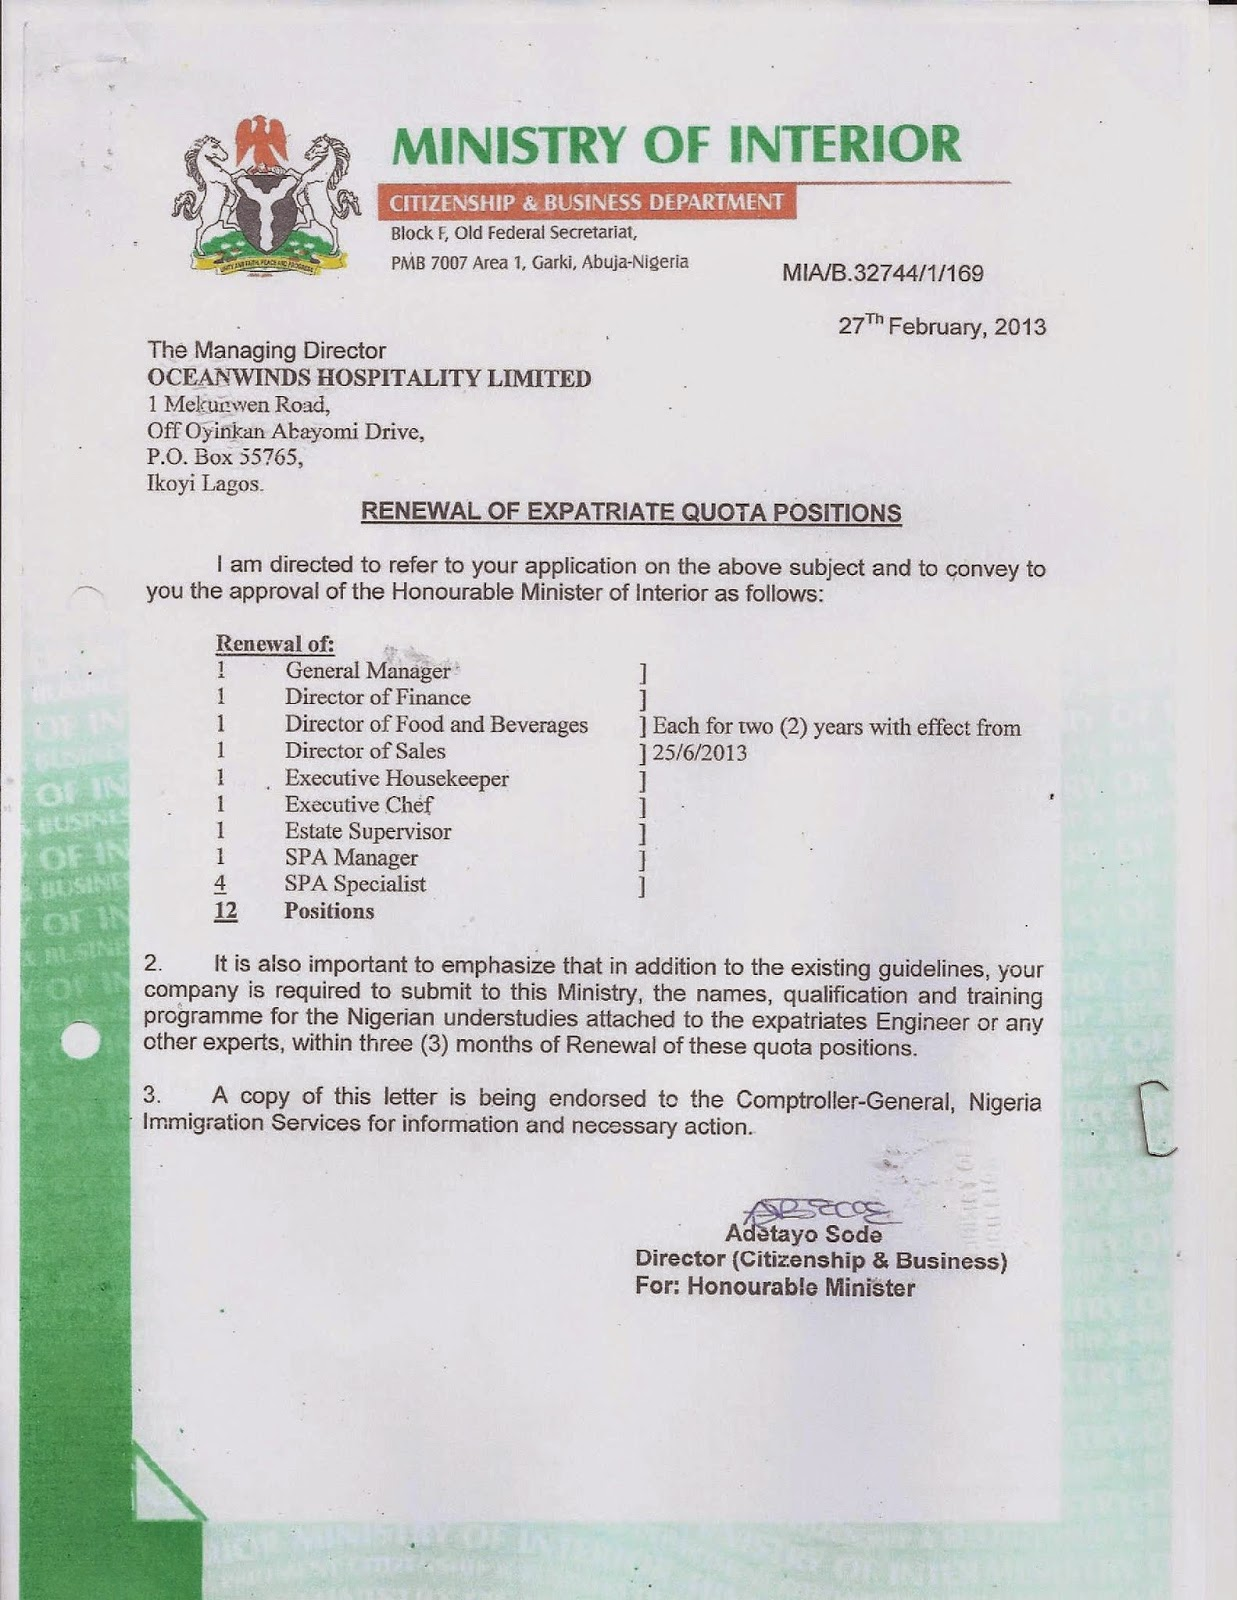 Ministry+of+Interior+Nigeria Sample Application Letter For Police Applicant on teaching position, for school board, for transfer, for housekeeping, college scholarship, any position, high school,